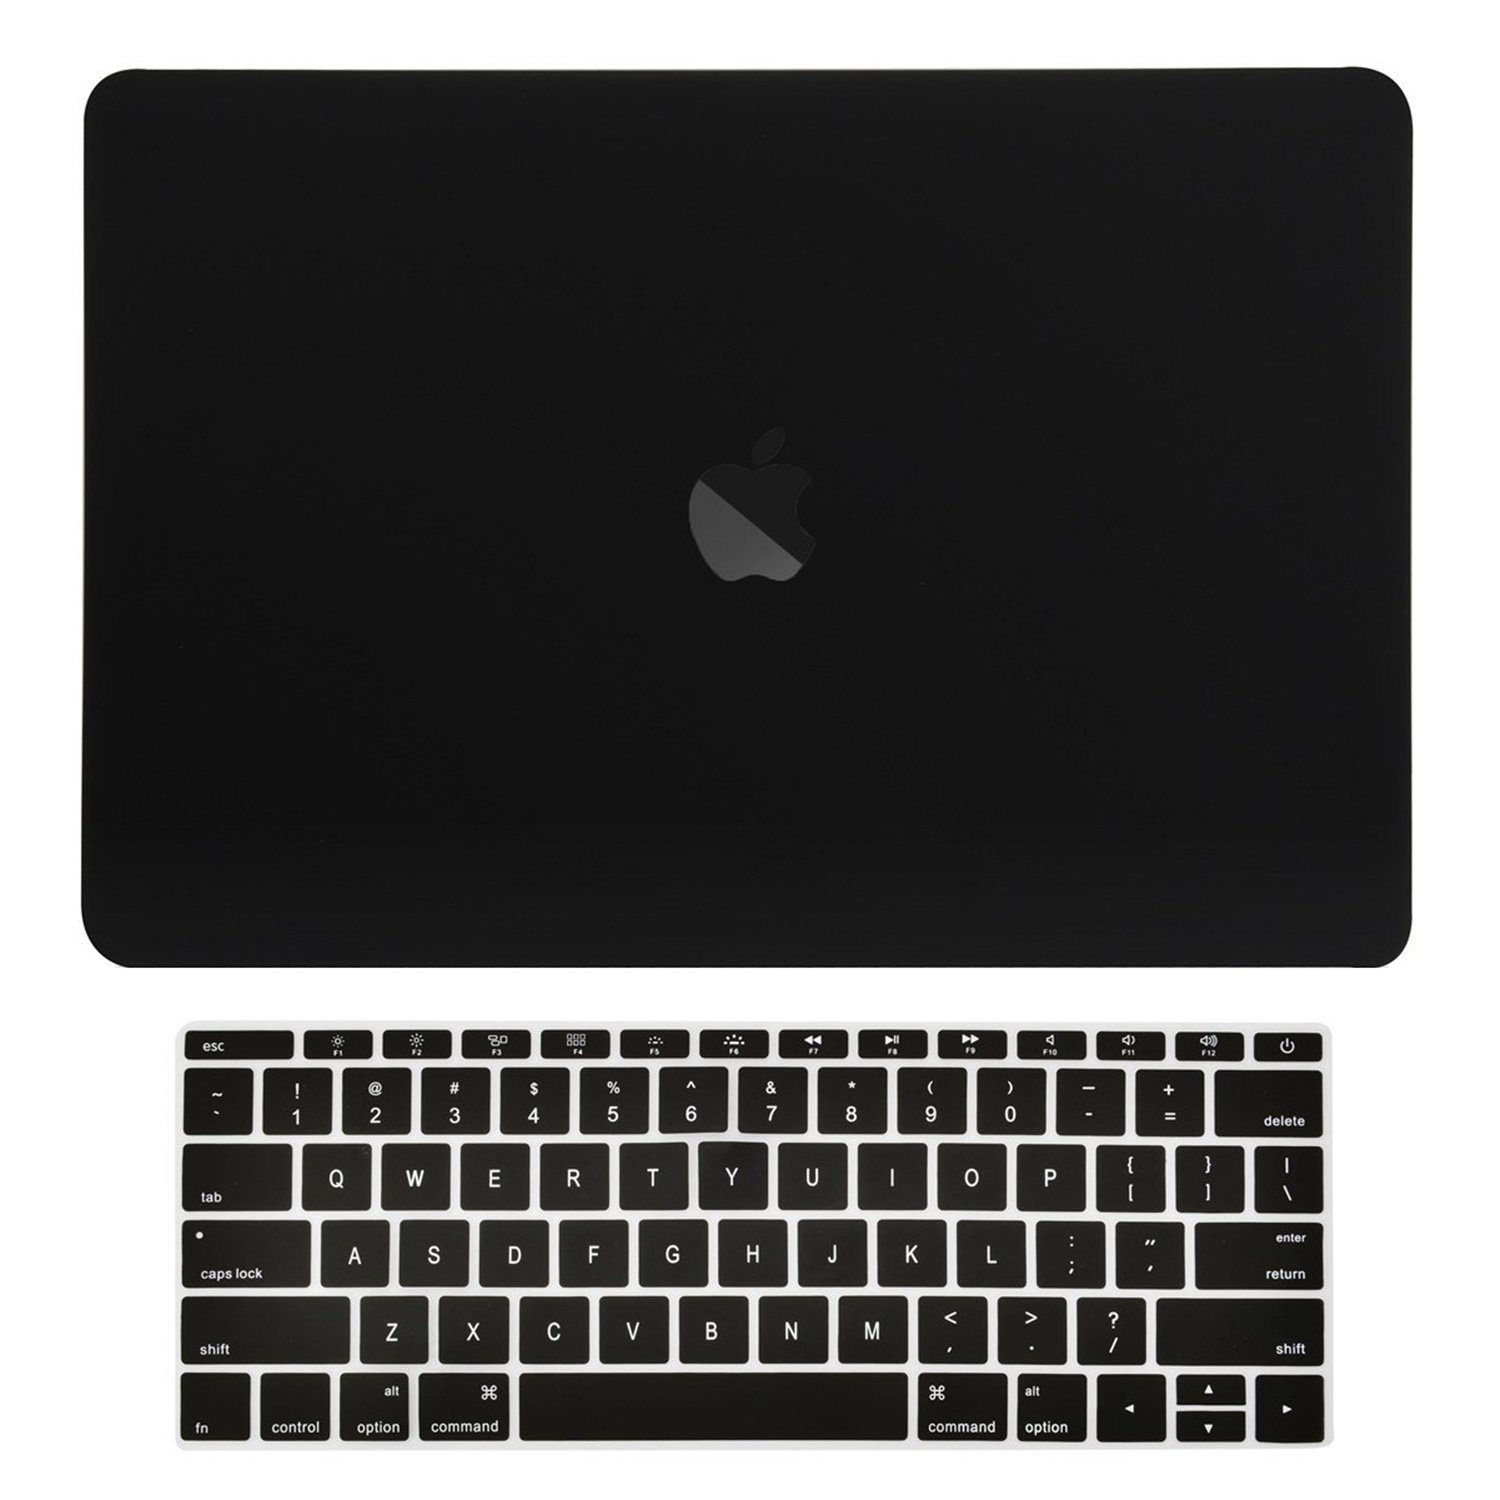 TOP CASE - MacBook Pro 13 Without Touch Bar (Release 2017 & 2016) 2 in 1 Bundle, Rubberized Hard Case Cover + Matching Color Keyboard Cover for MacBook Pro 13-inch A1708 Without Touch Bar - Black